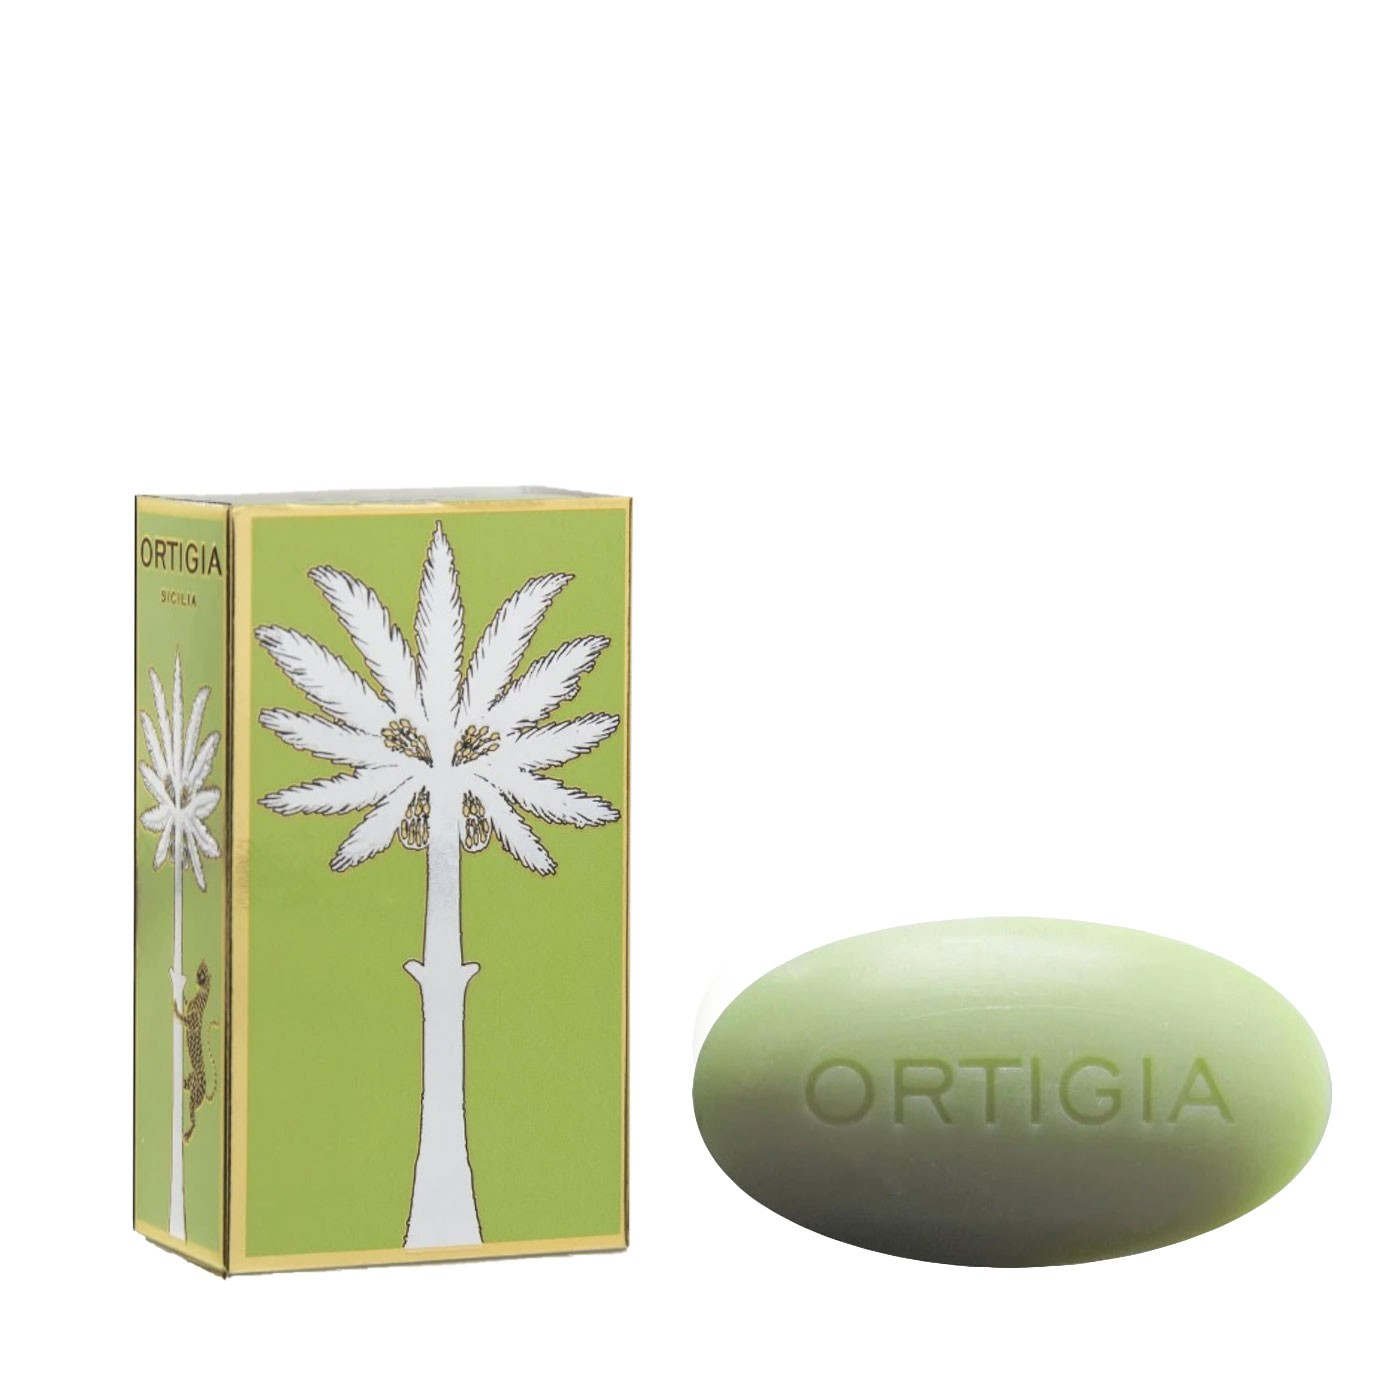 Fico d'India Scented Soap Bar 1.4 oz - Ortigia | Eataly.com